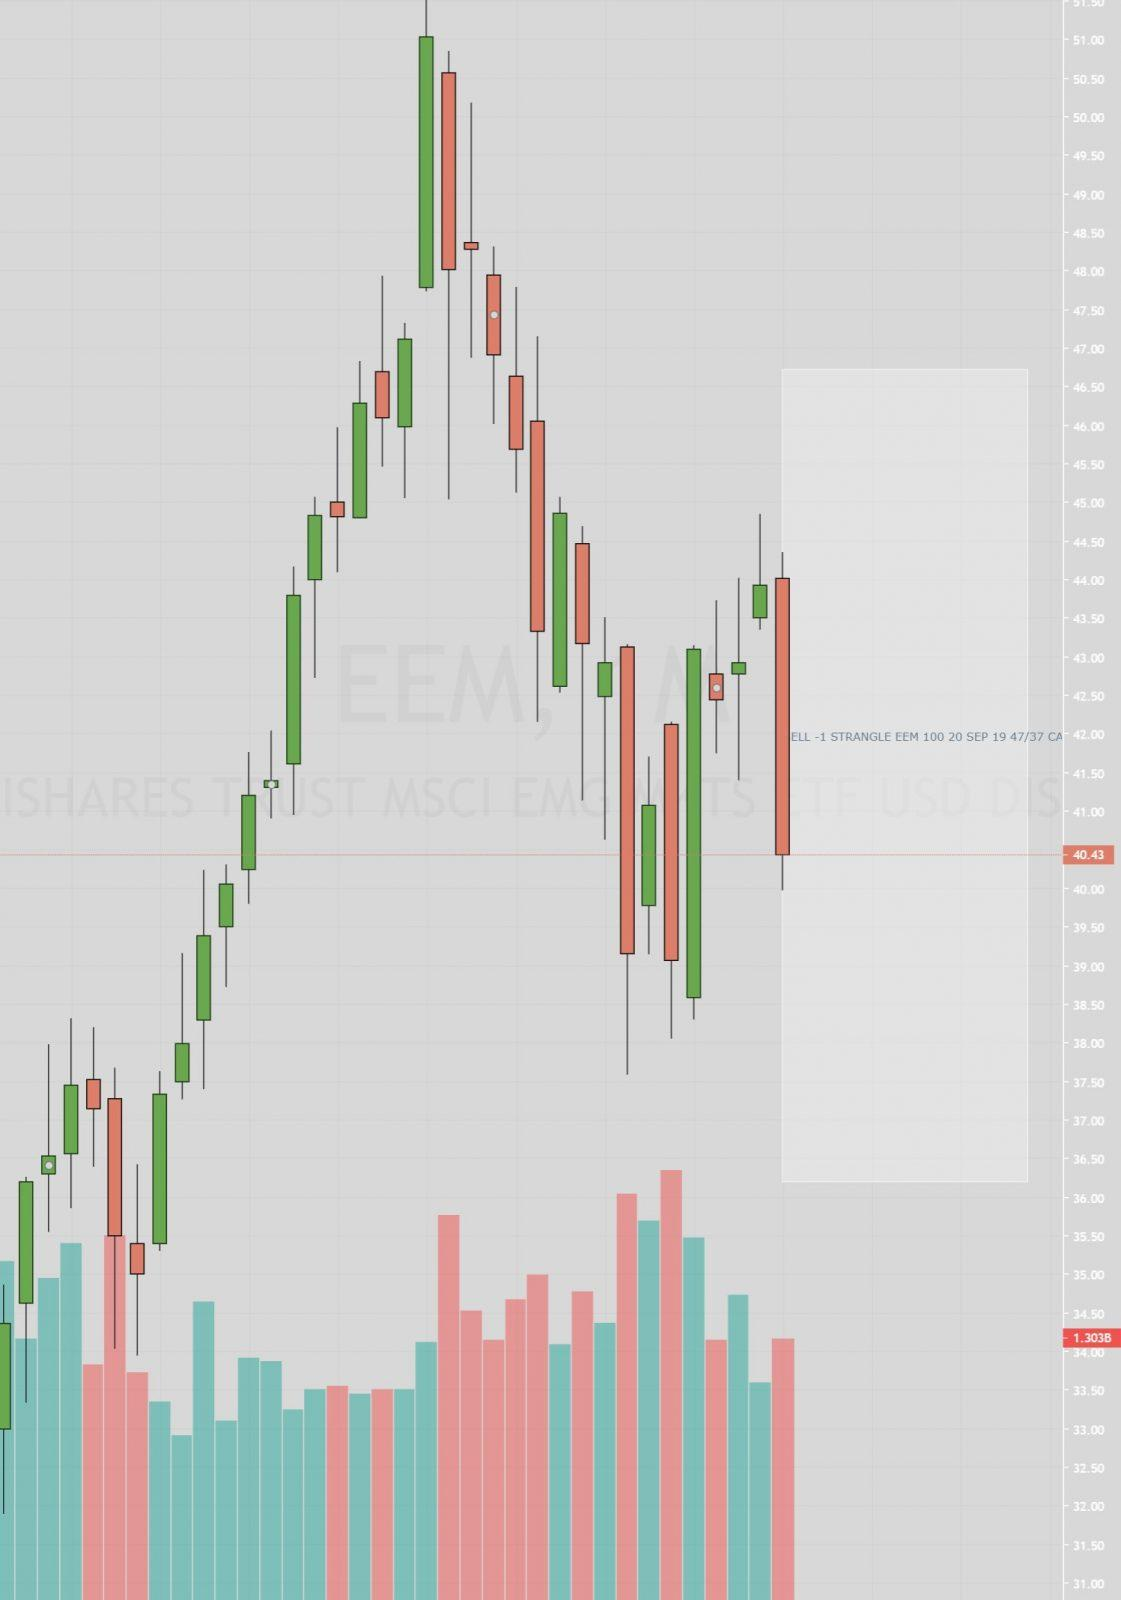 chart monthly eem options trading strangle 051019